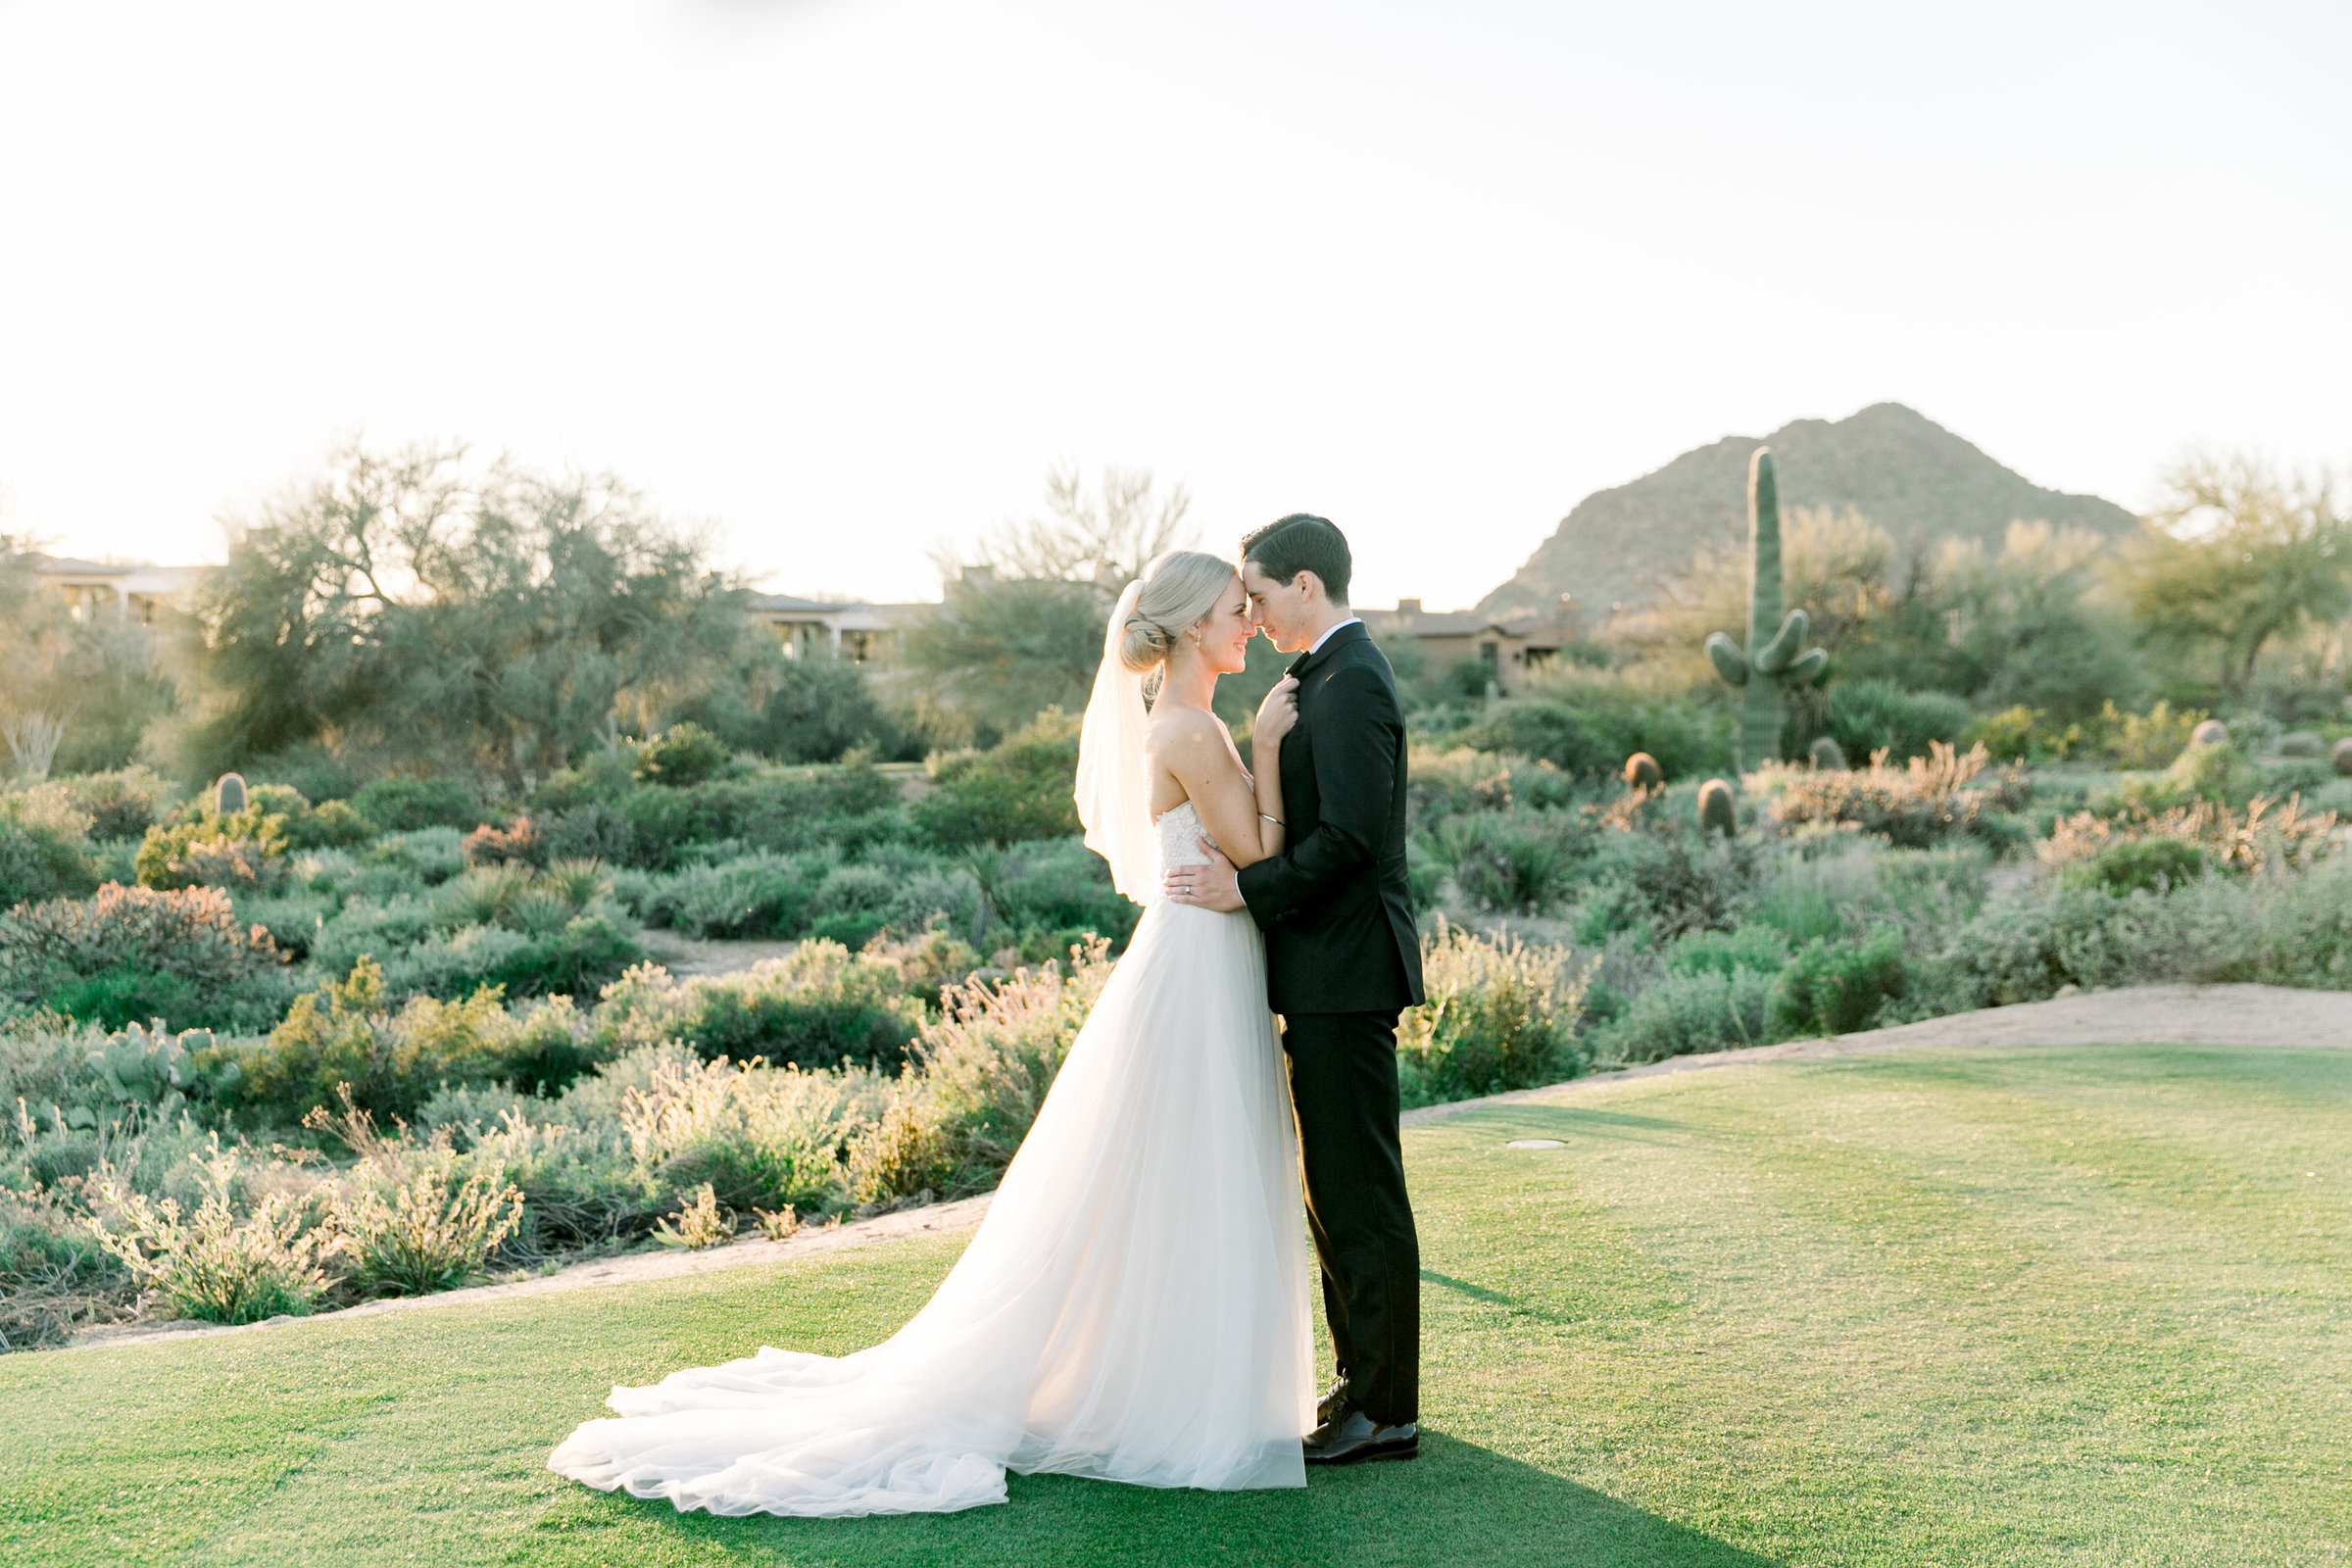 Karlie Colleen Photography - Arizona Wedding at The Troon Scottsdale Country Club - Paige & Shane -647